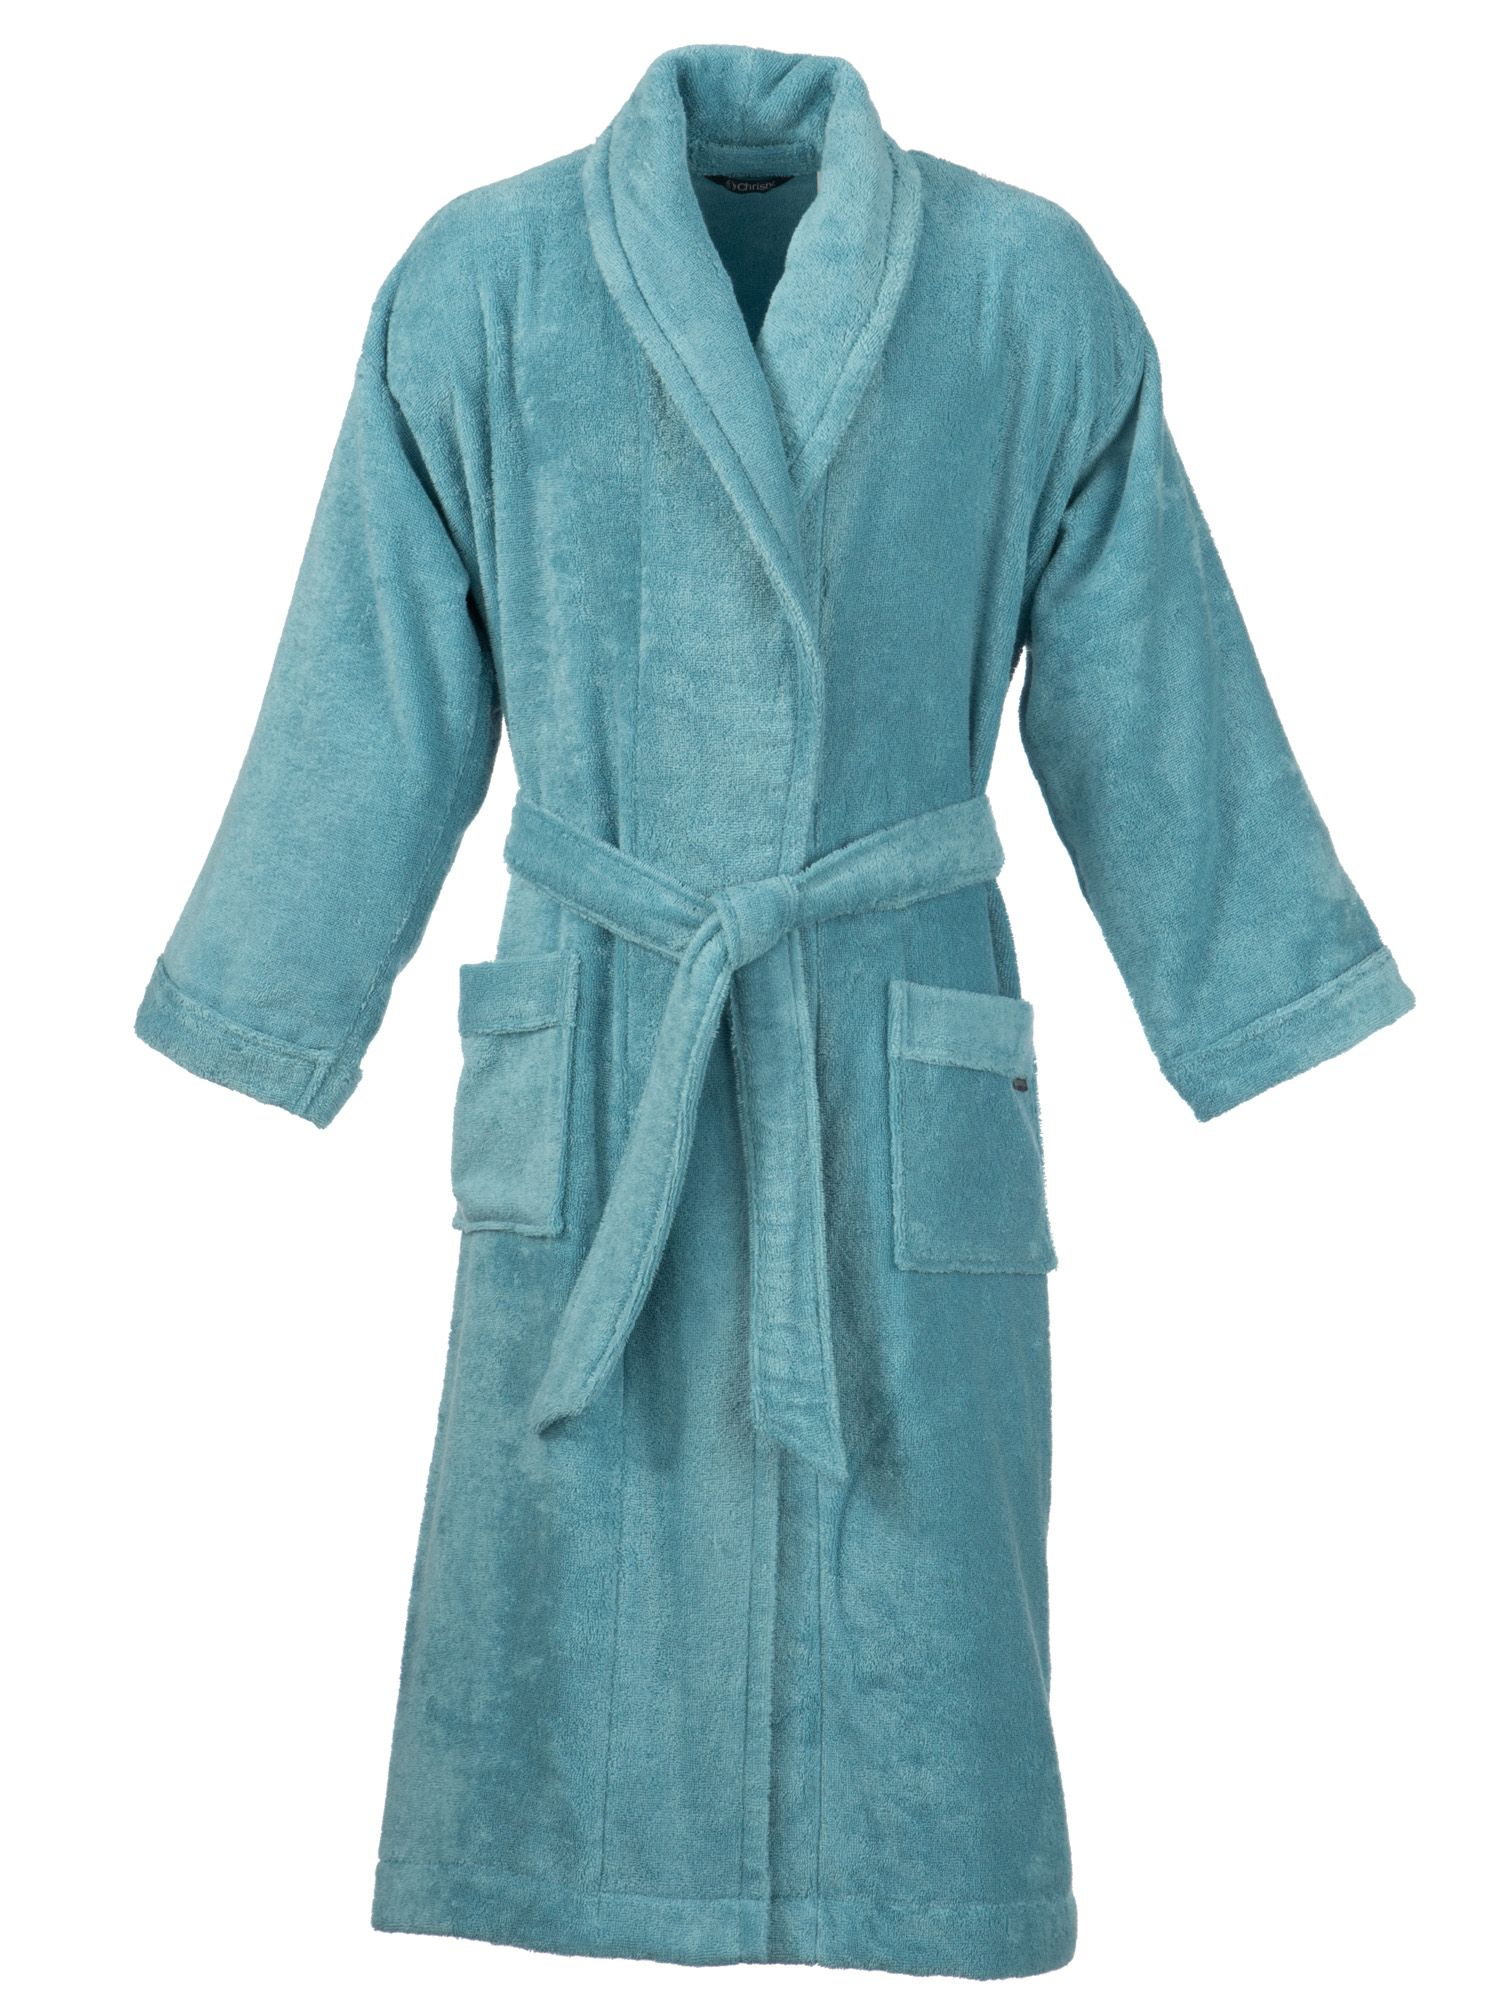 Supreme bath robe in lagoon